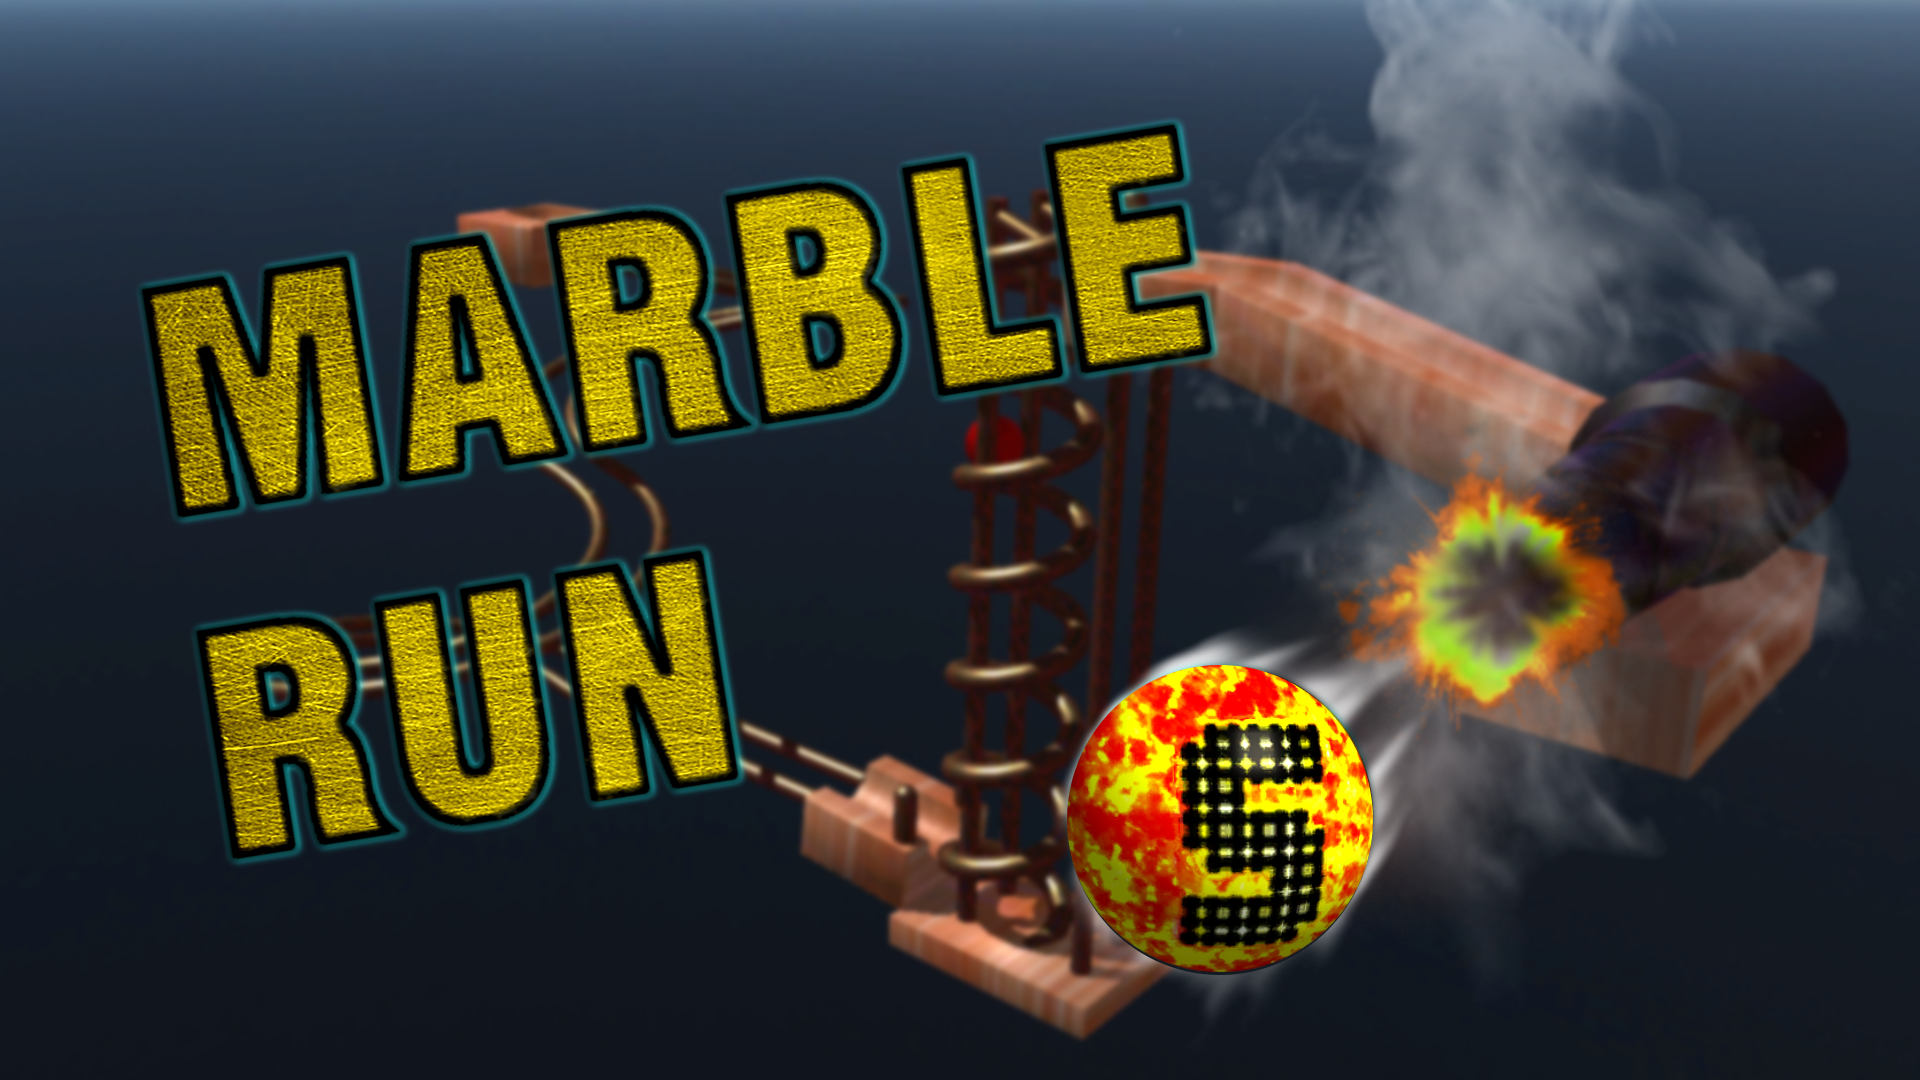 Oct 29, 2017 Help us improve the game! Marble Run - Sergey